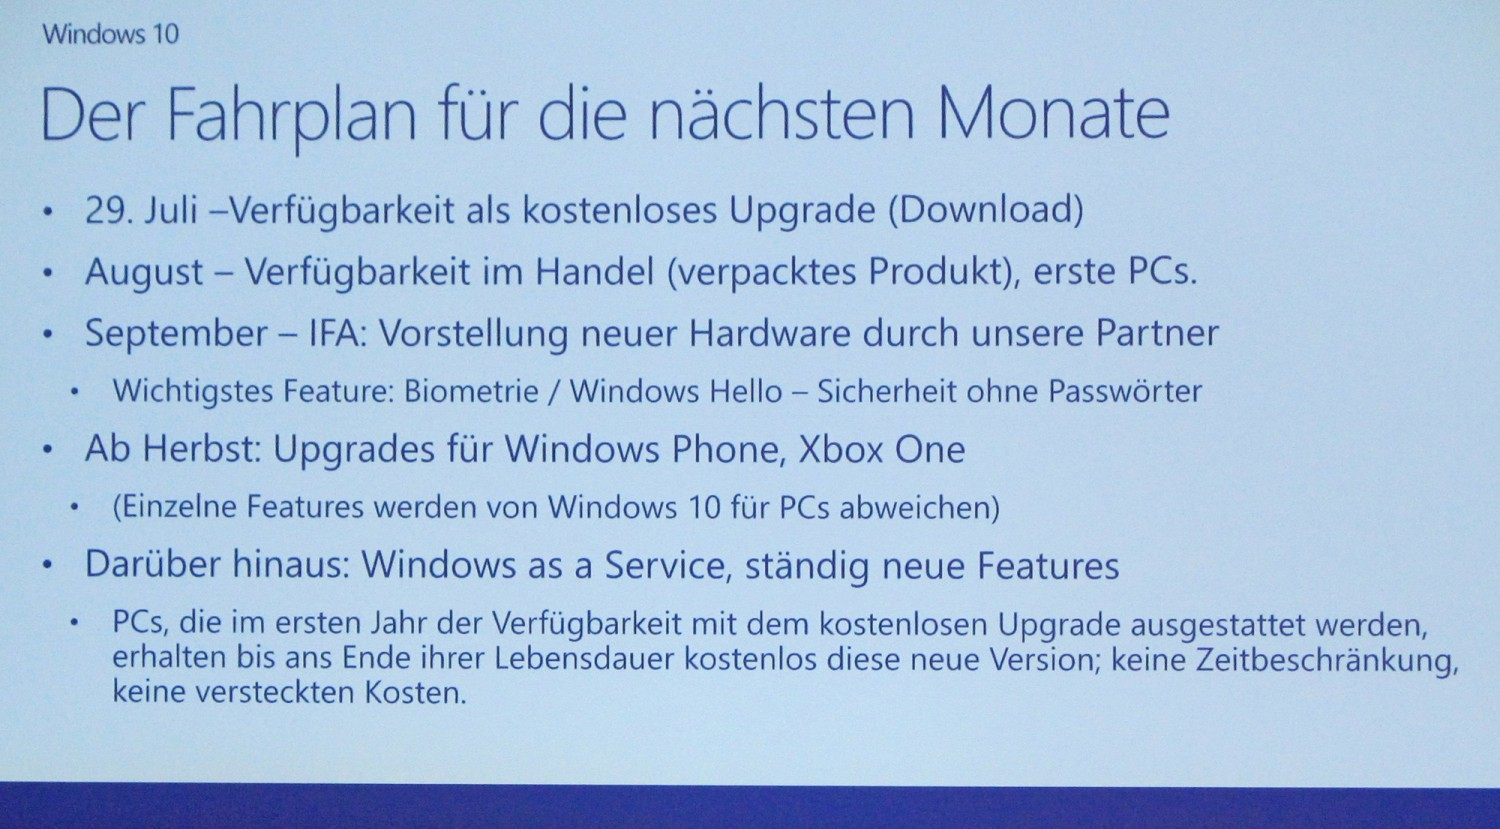 Windows-10-Fahrplan